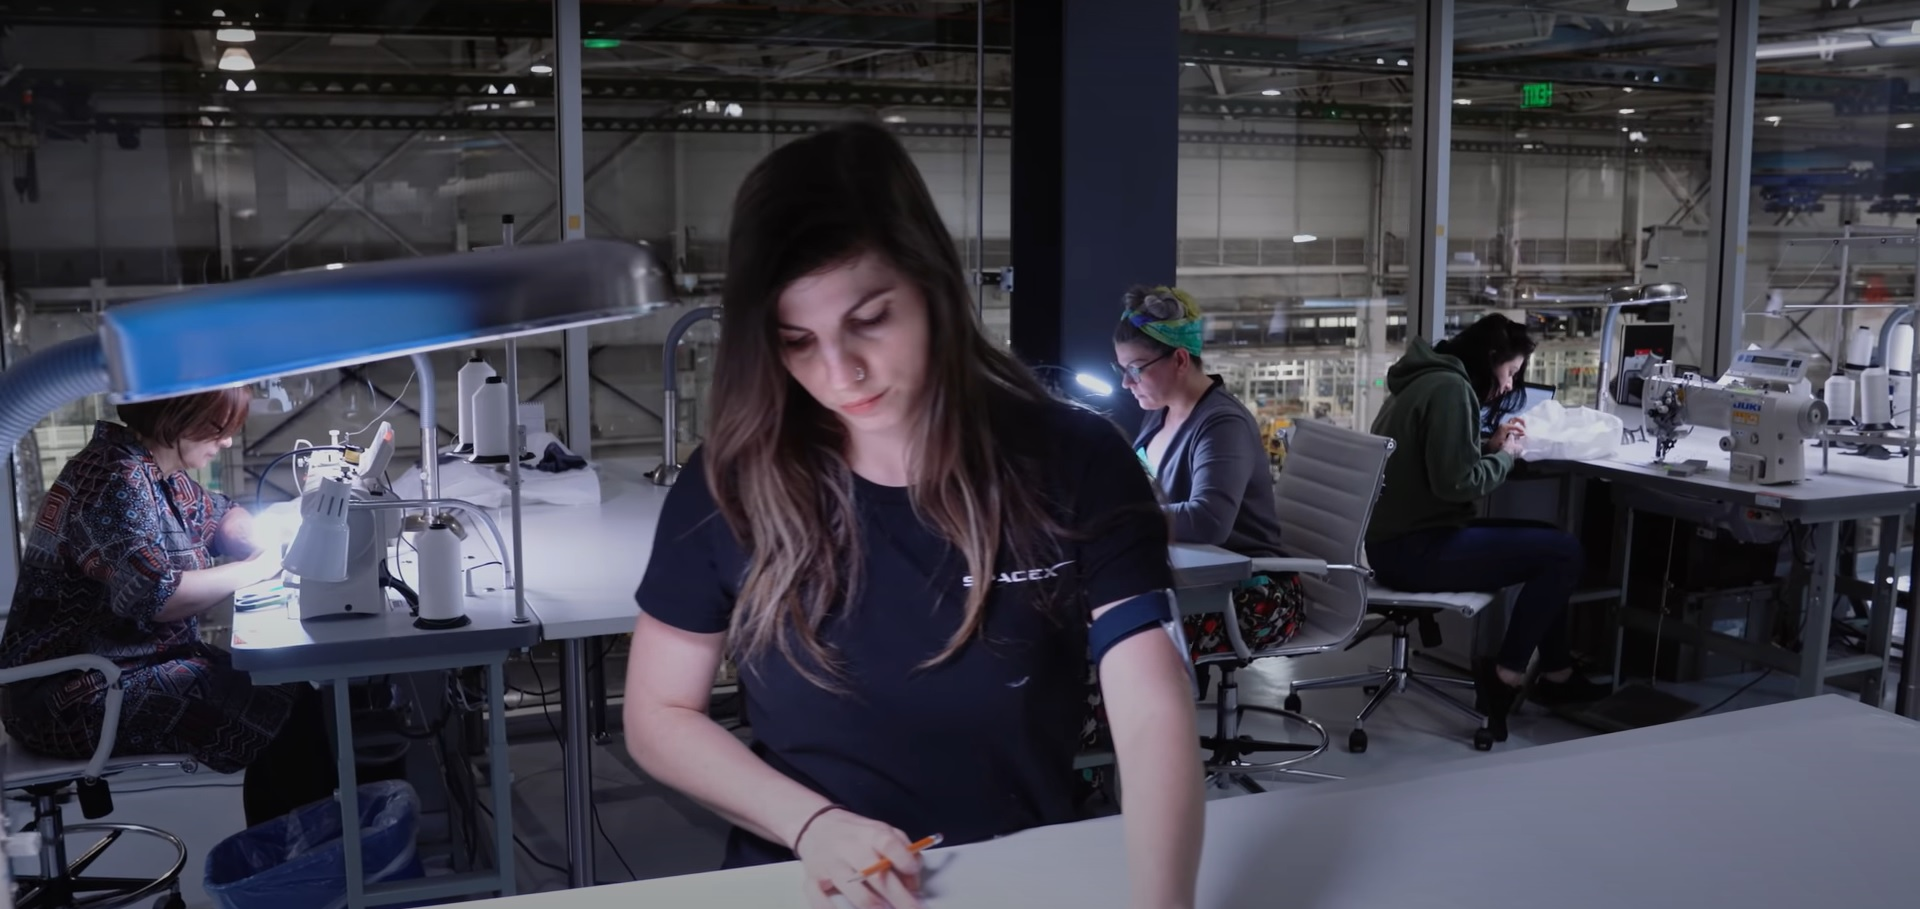 SpaceX-space-suit-lab-sewing-3